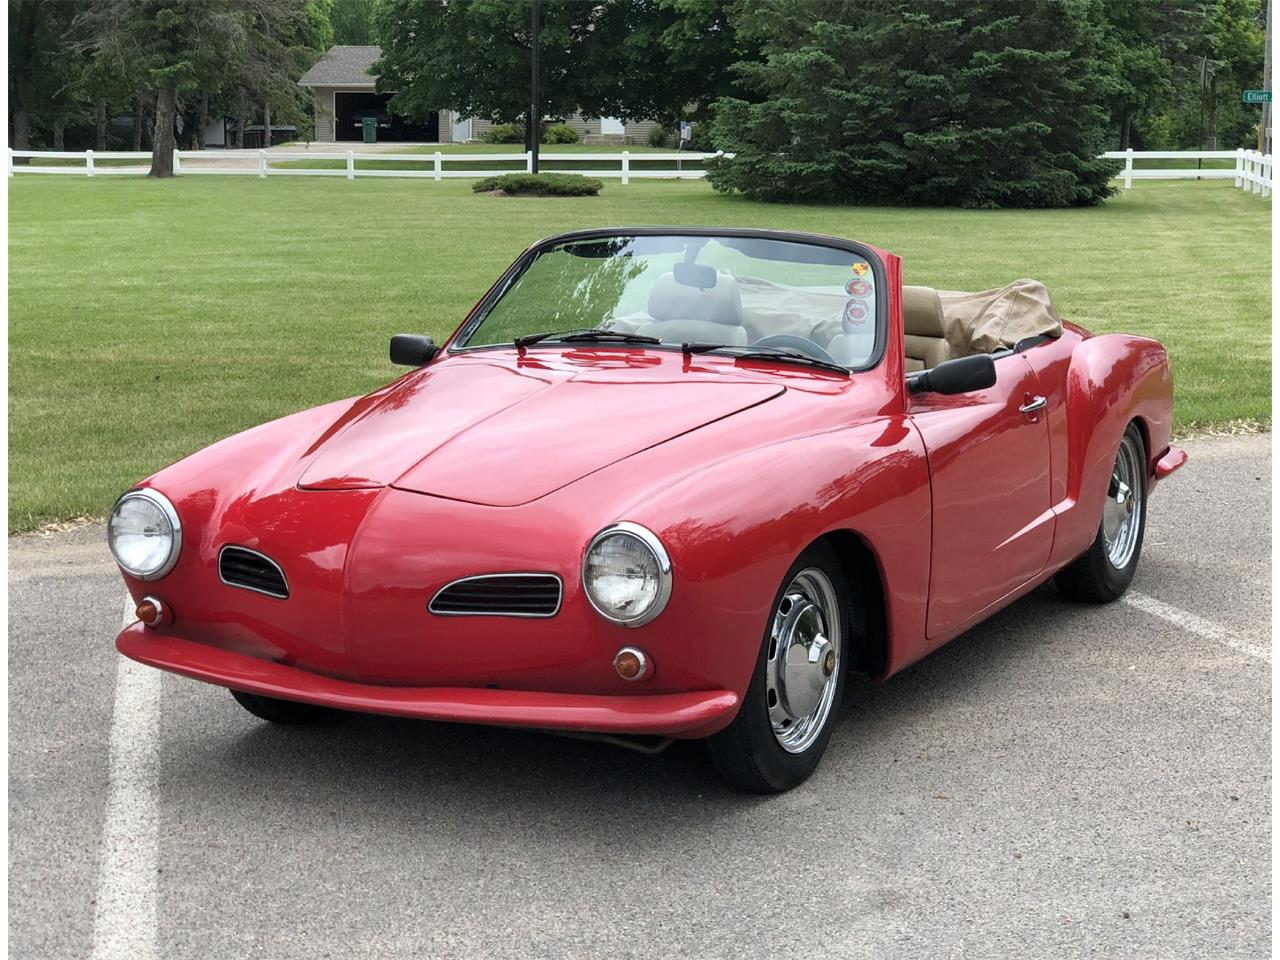 Large Picture of '72 Volkswagen Karmann Ghia located in Minnesota Offered by Silver Creek Classics - NM7V